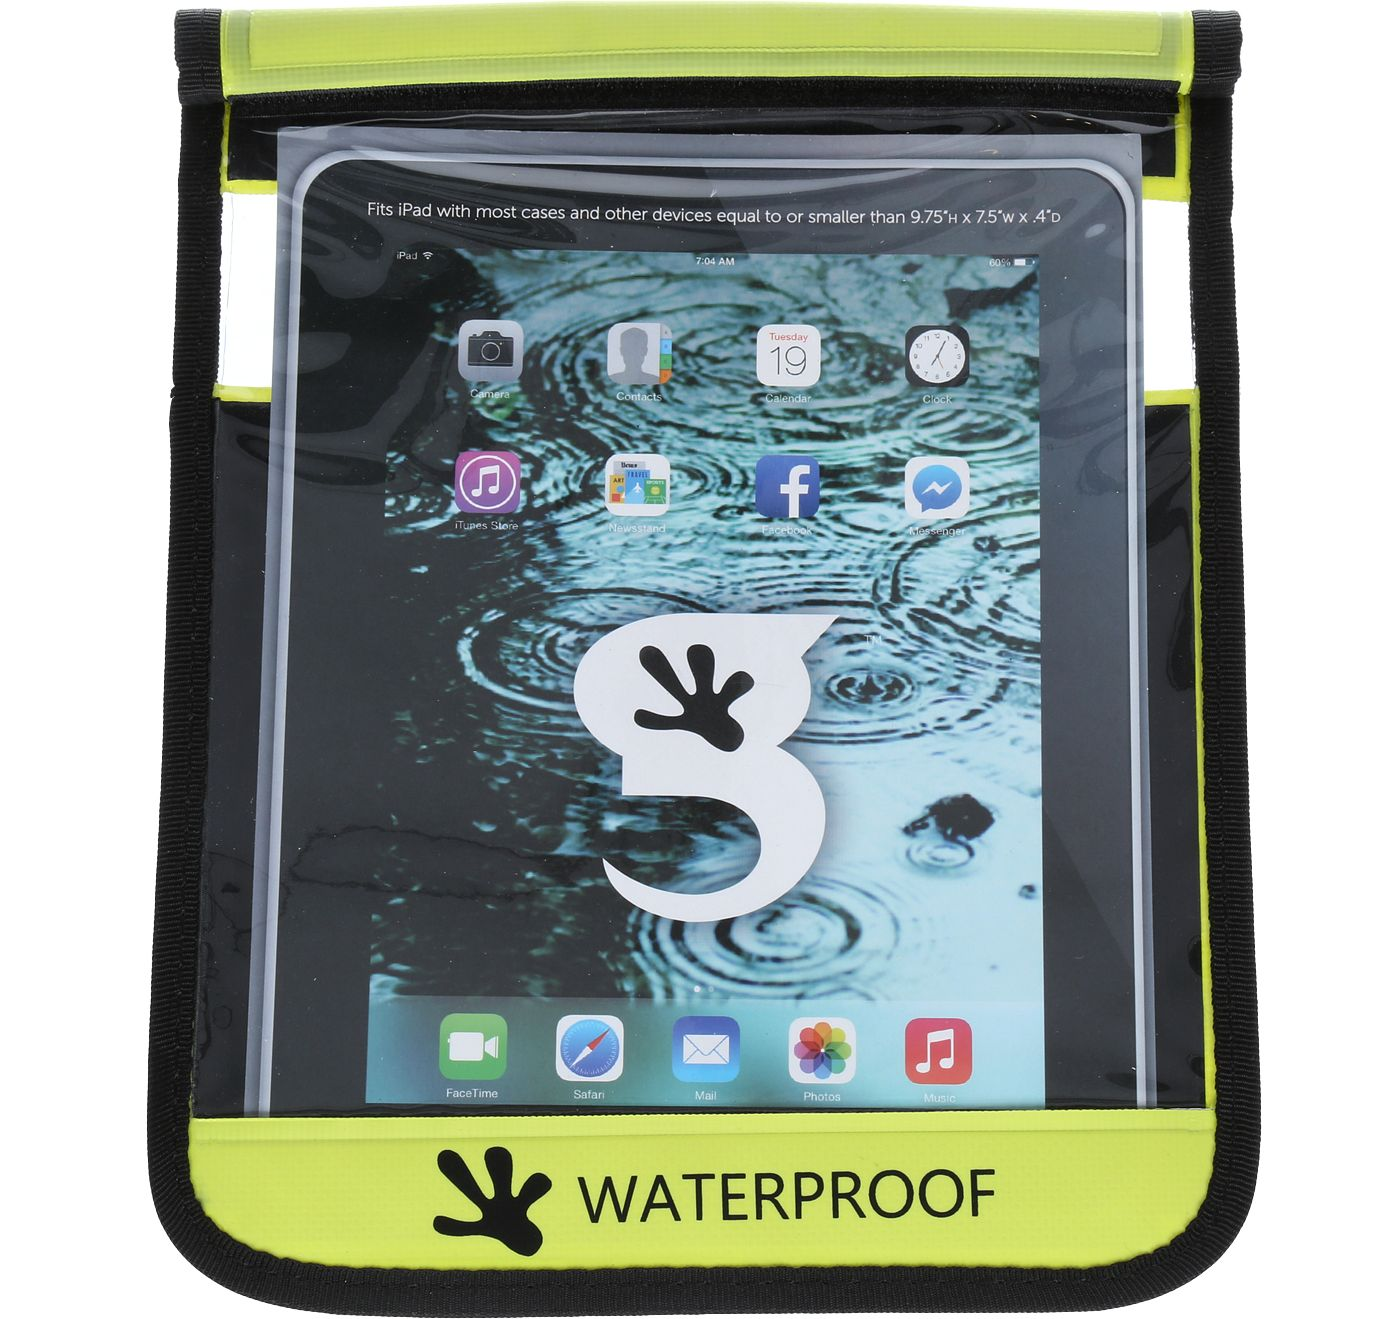 geckobrands Waterproof Tablet Dry Case